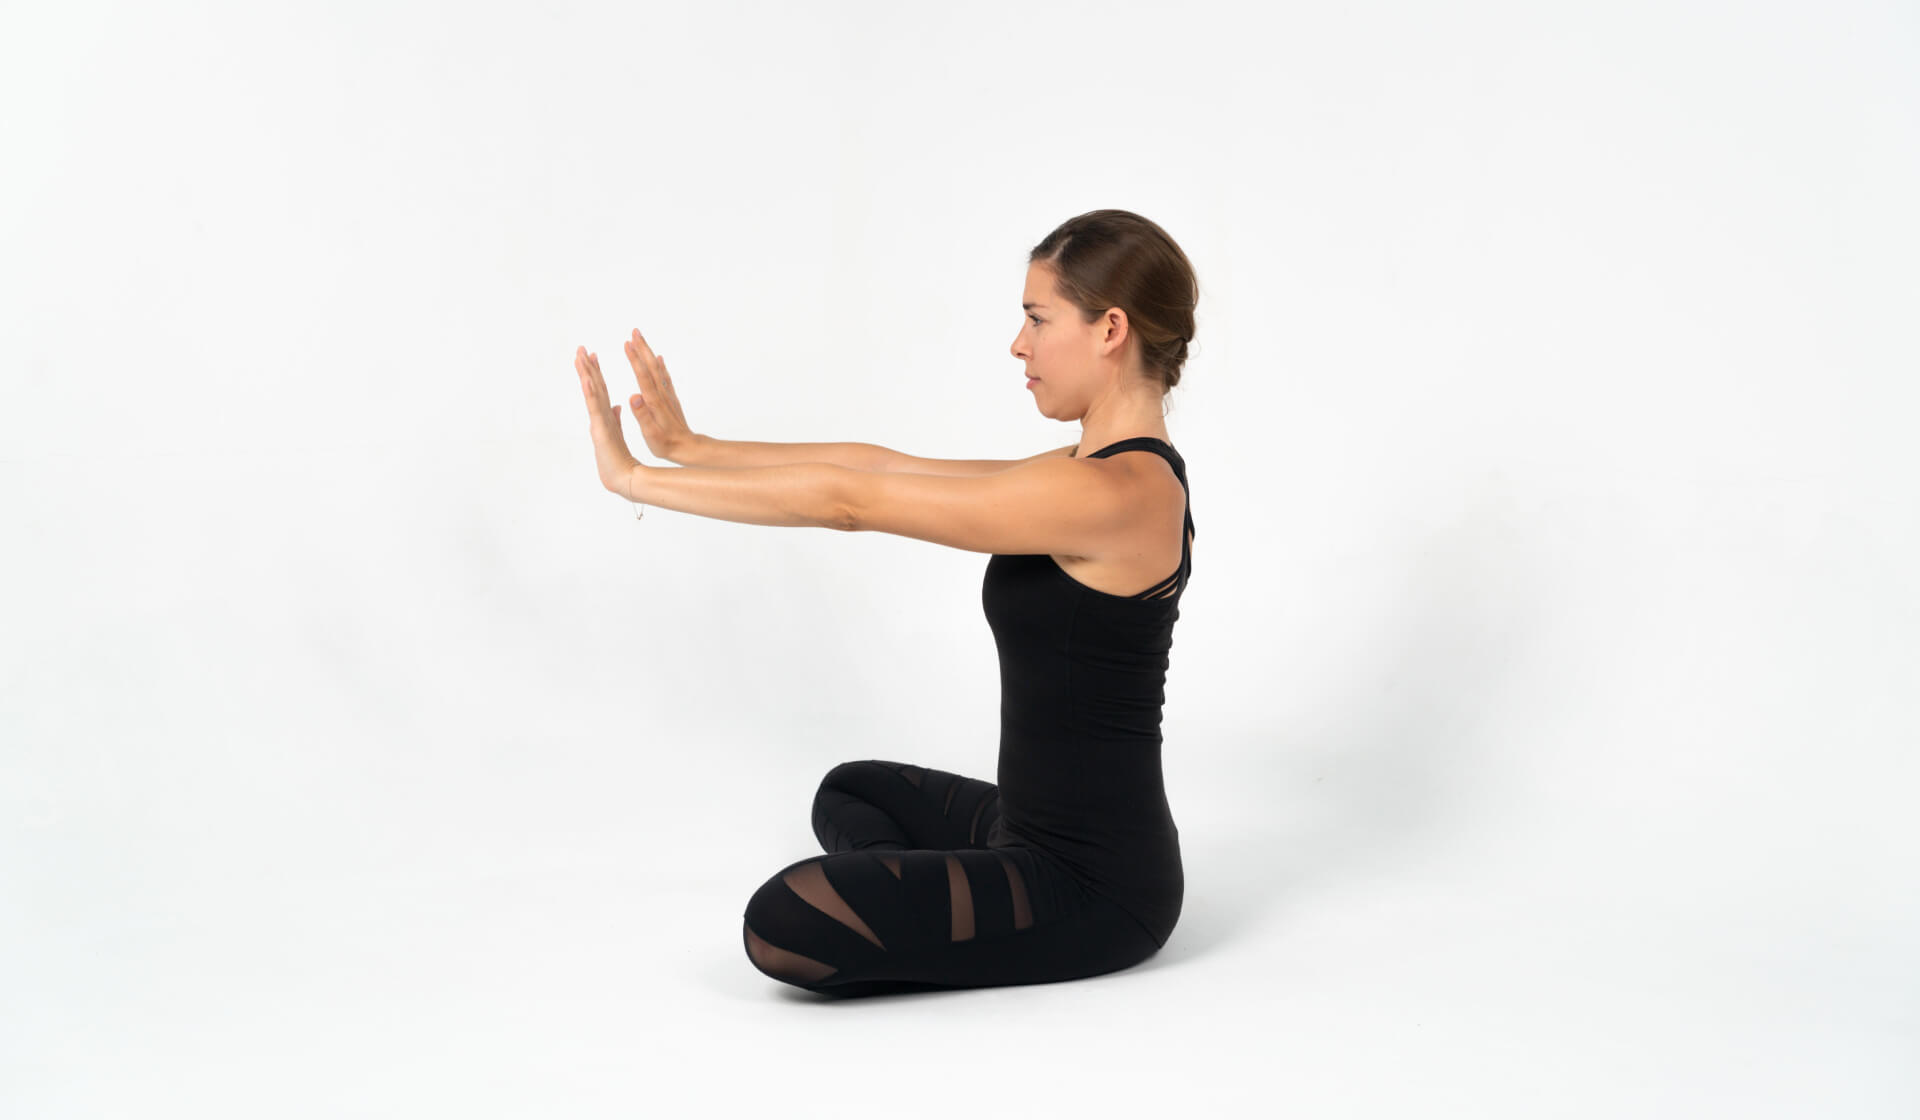 Yoga teacher dressed in all black seated with her arms stretched in front of her against a white backdrop